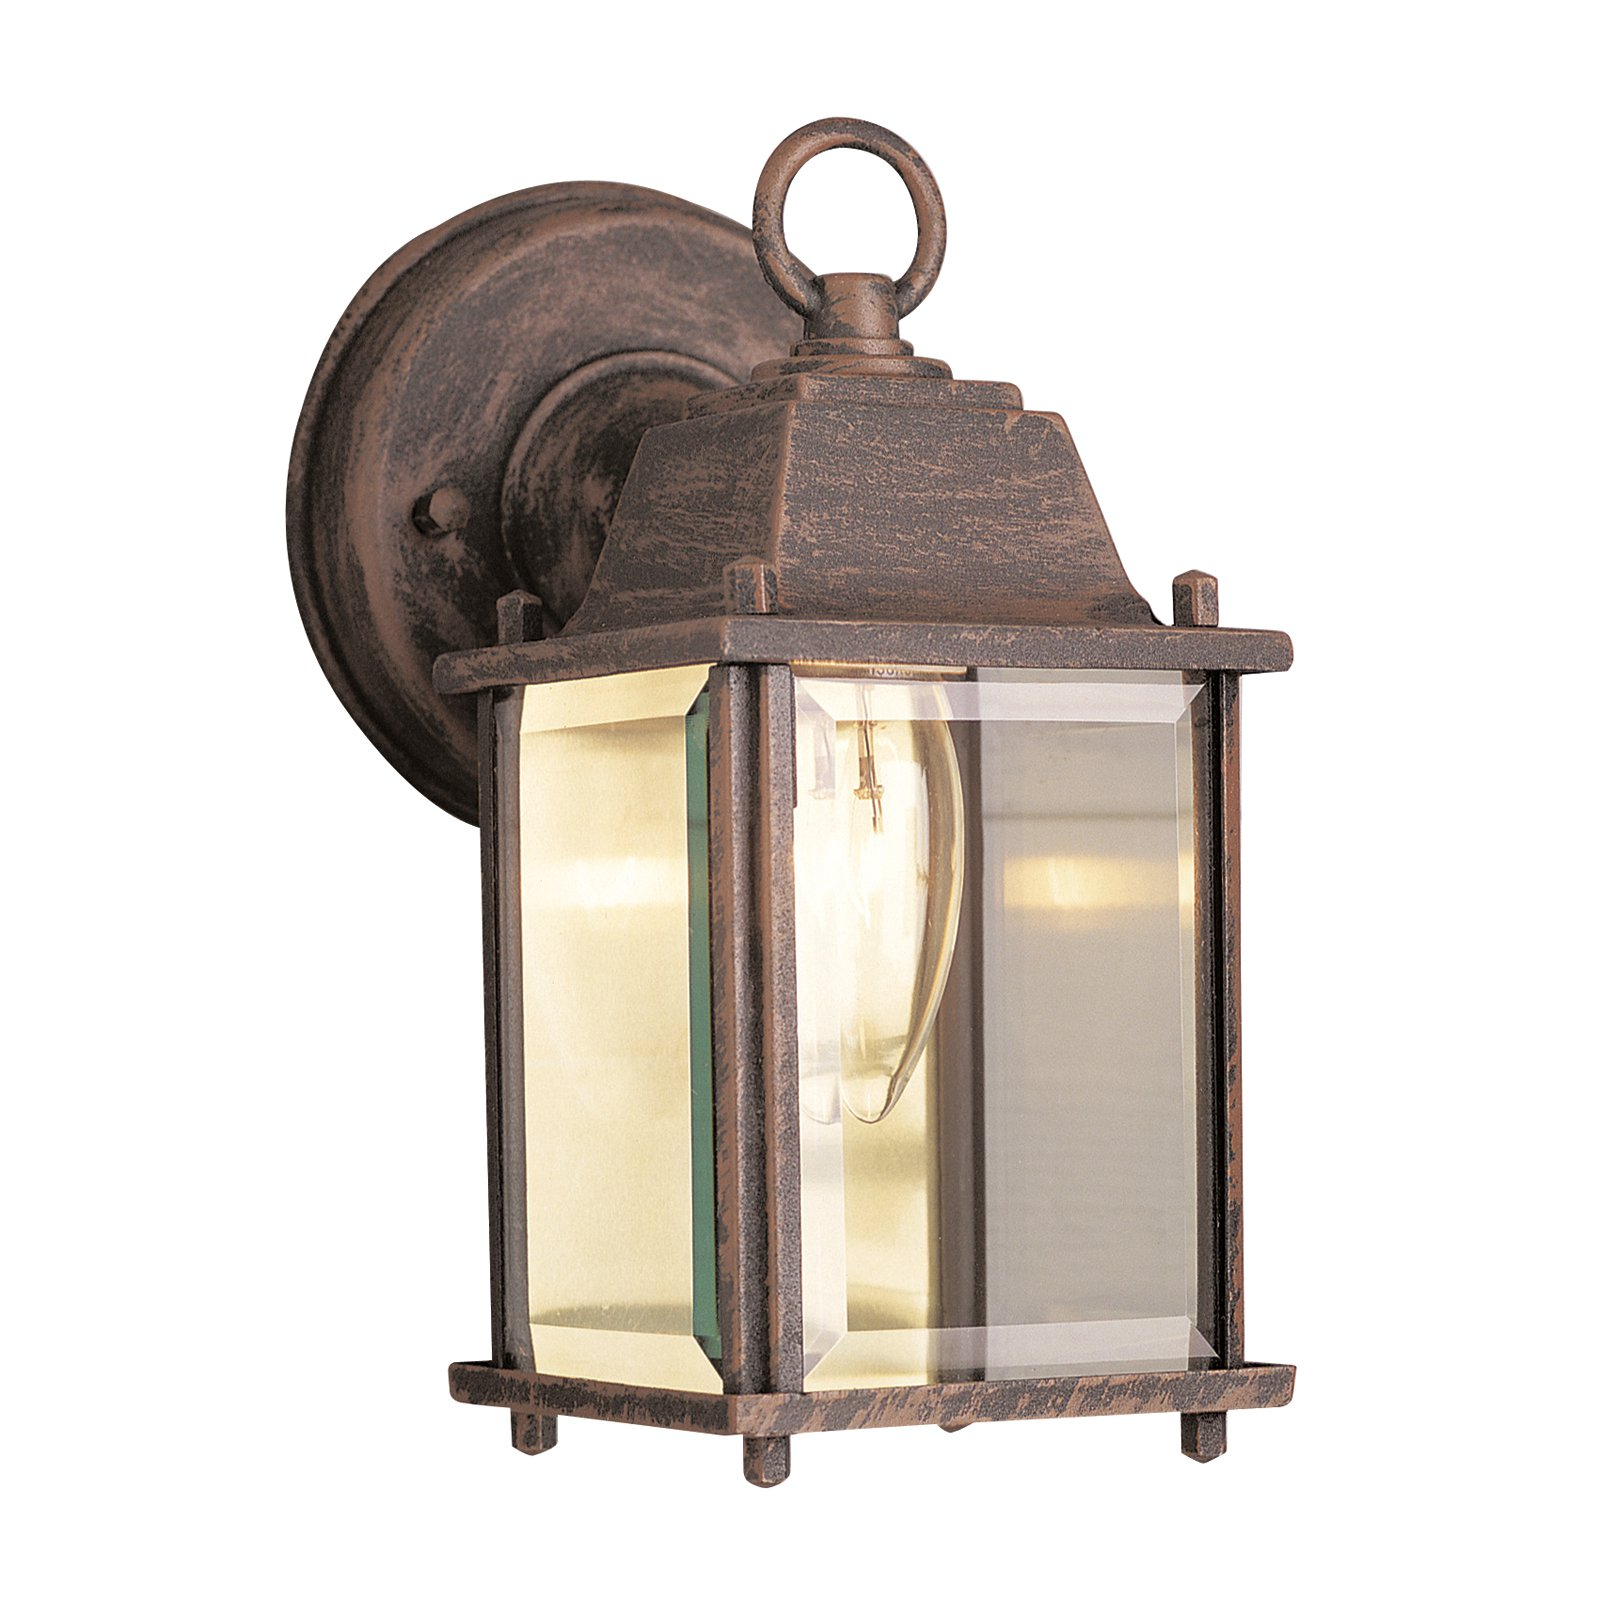 Bel Air Elmont Outdoor Wall Light - 8H in.